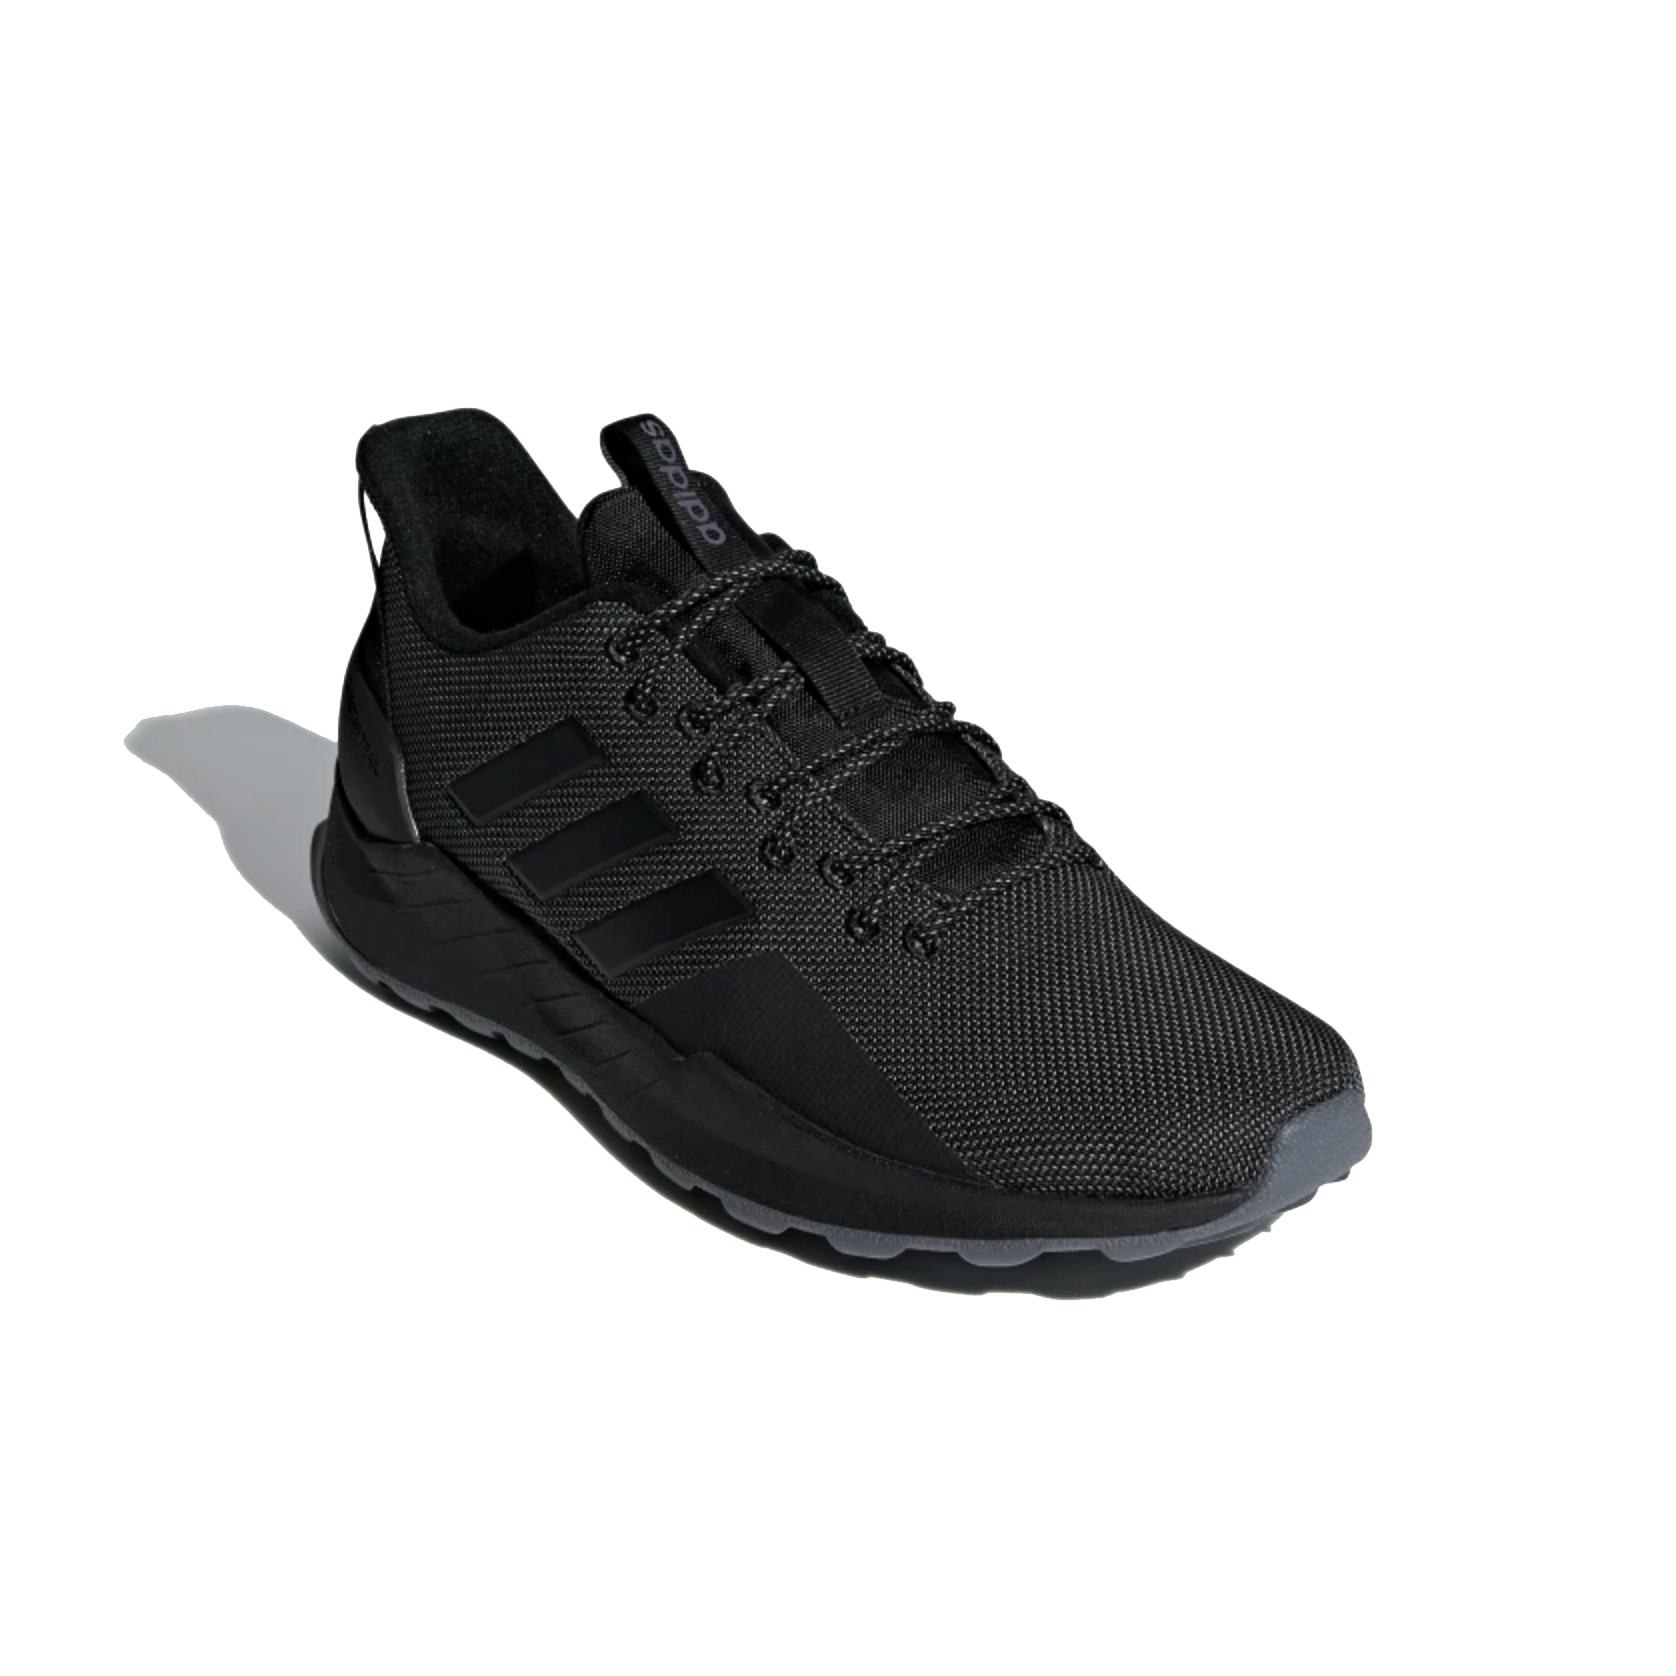 differently 10f1e 057c5 Adidas BB7436 Men s Questar Trail Running Shoes, CoreBlack CoreBlack Grey,  7.5